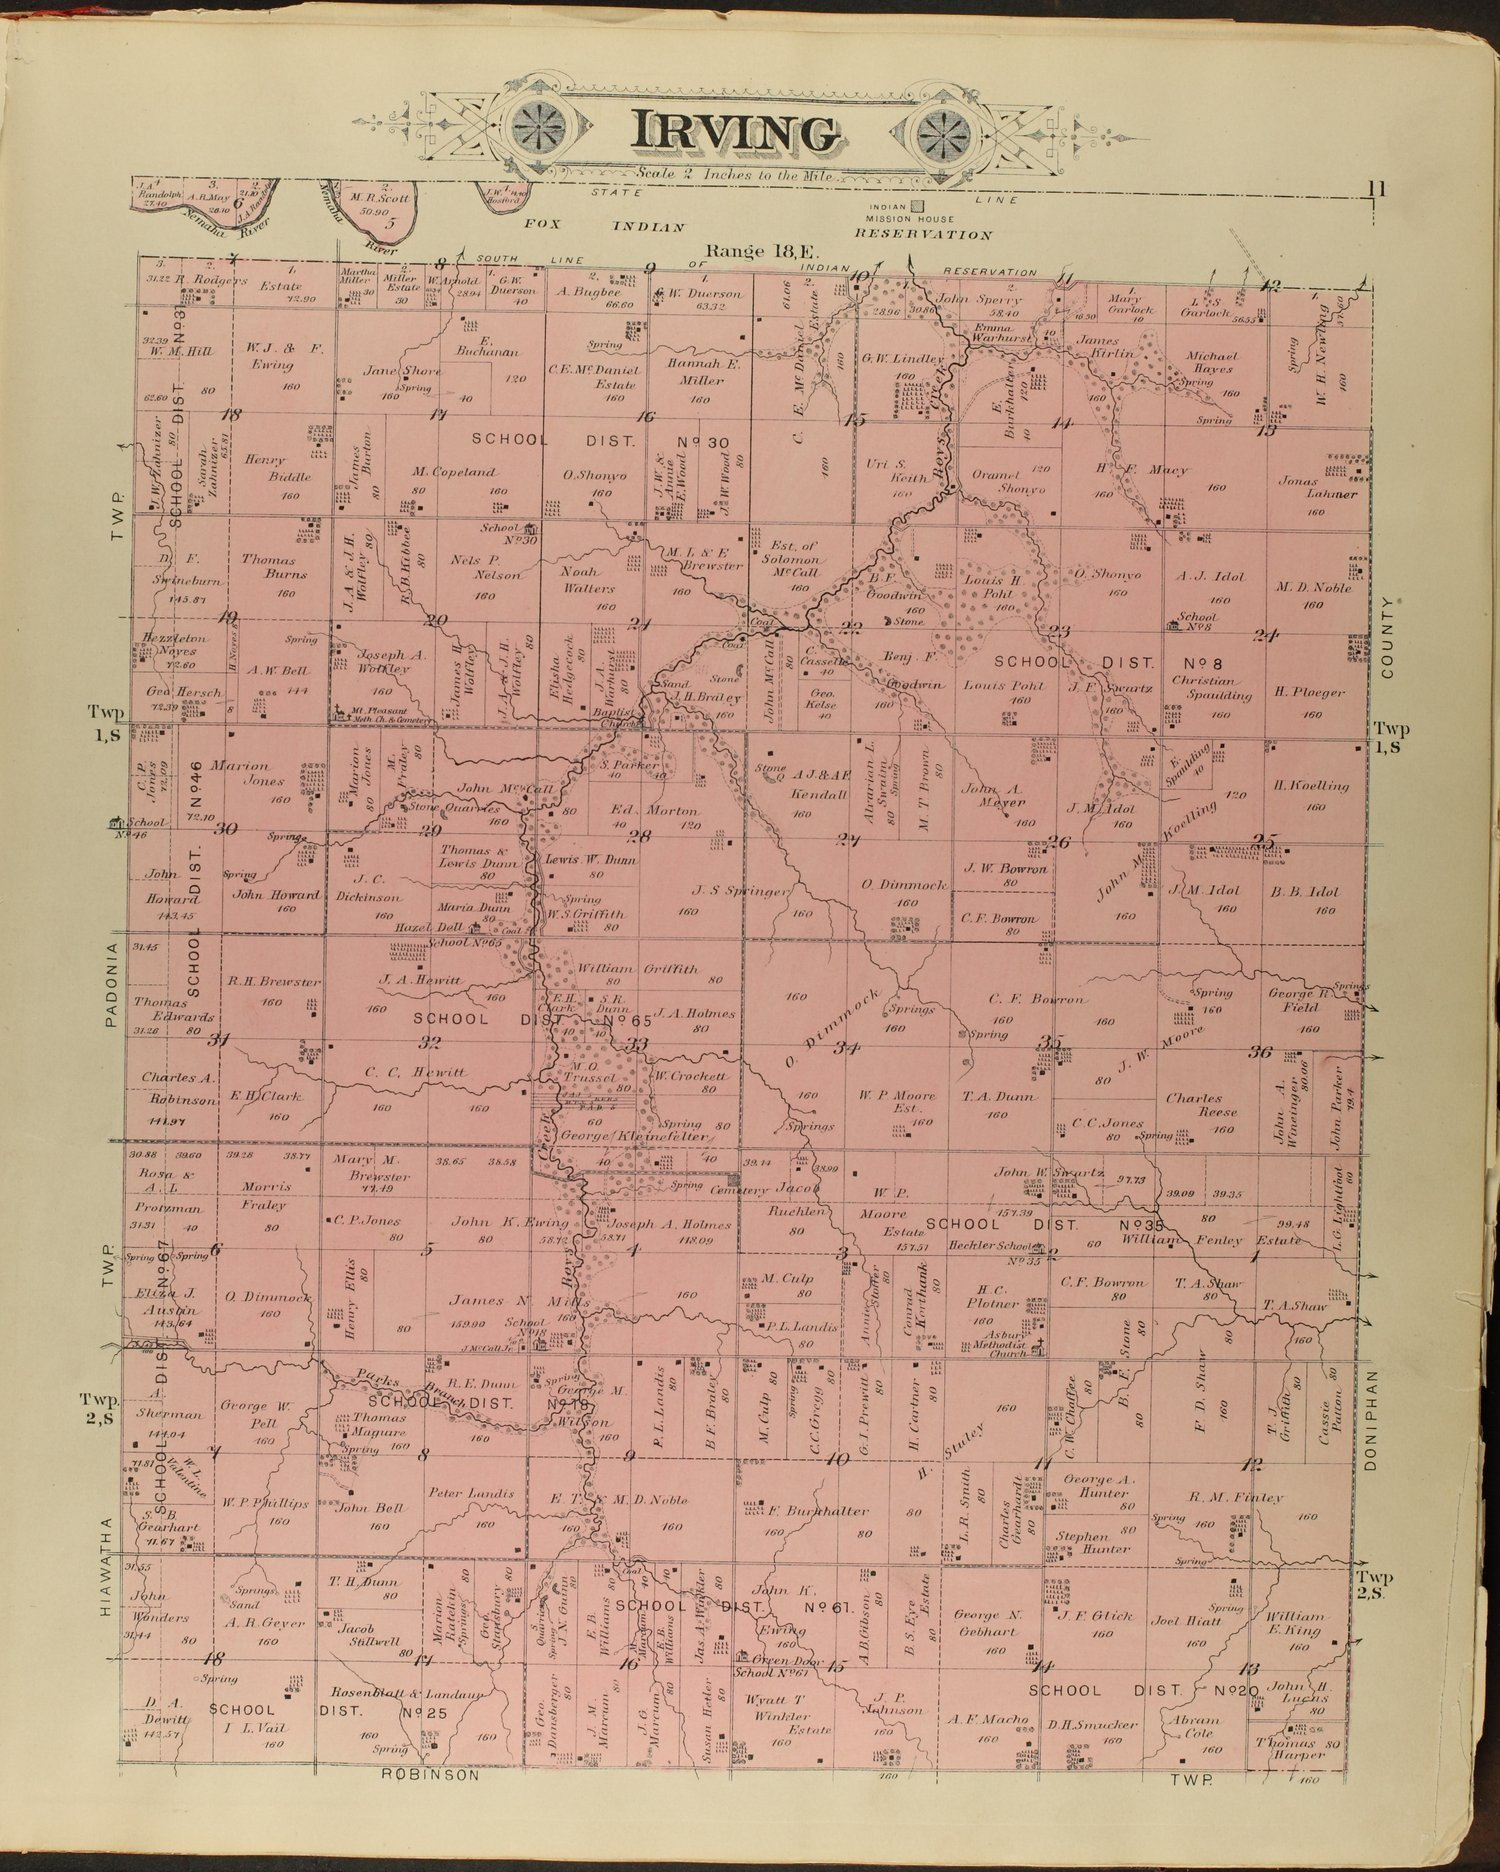 Meacham's illustrated atlas of Brown and Nemaha counties, Kansas - 11